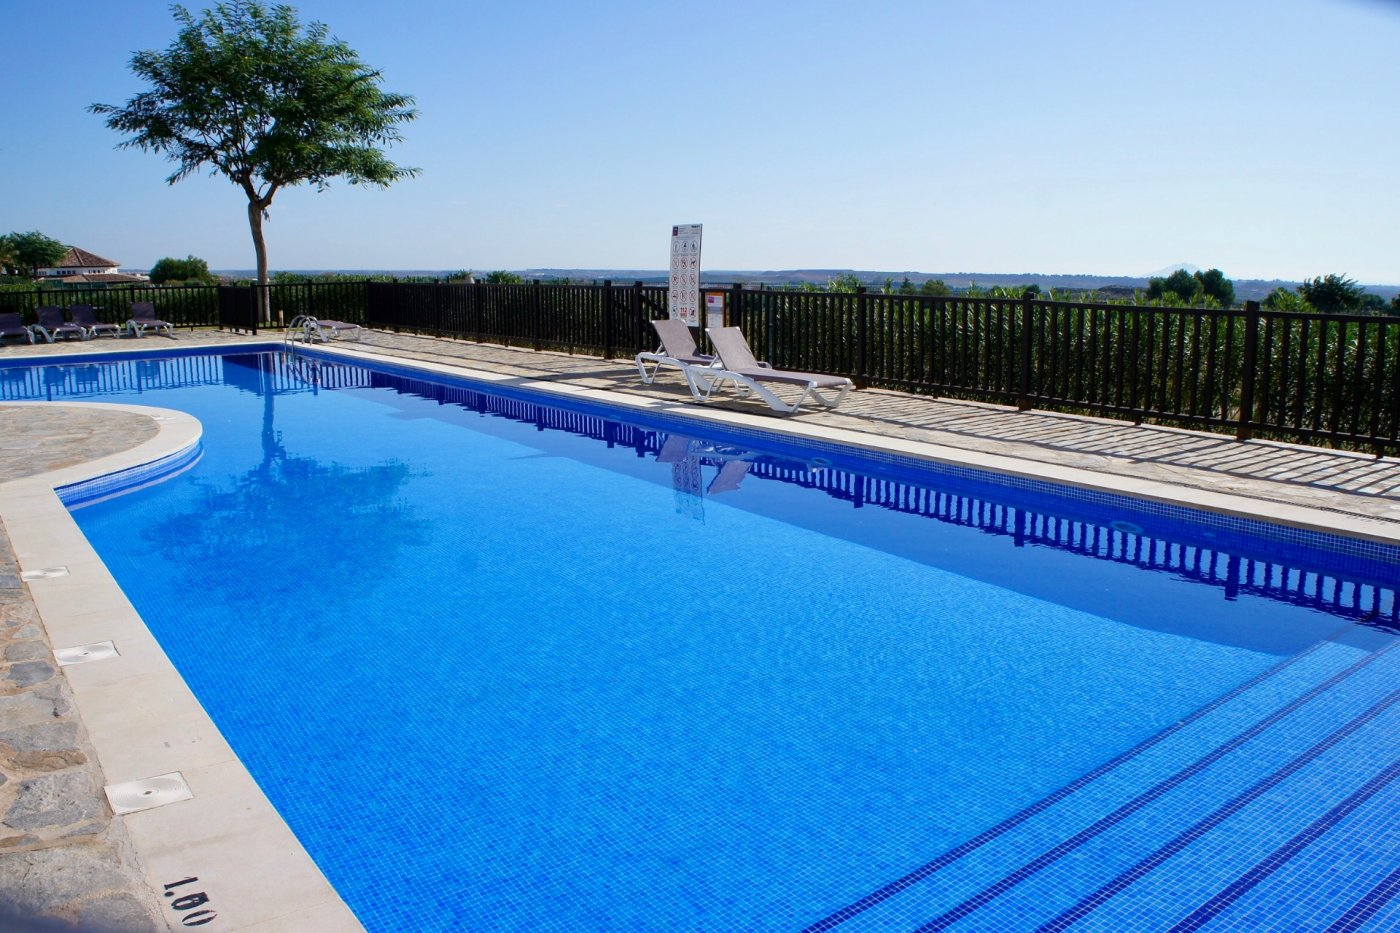 Image 3 Apartment ref 3265-03114 for sale in El Valle Golf Resort Spain - Quality Homes Costa Cálida